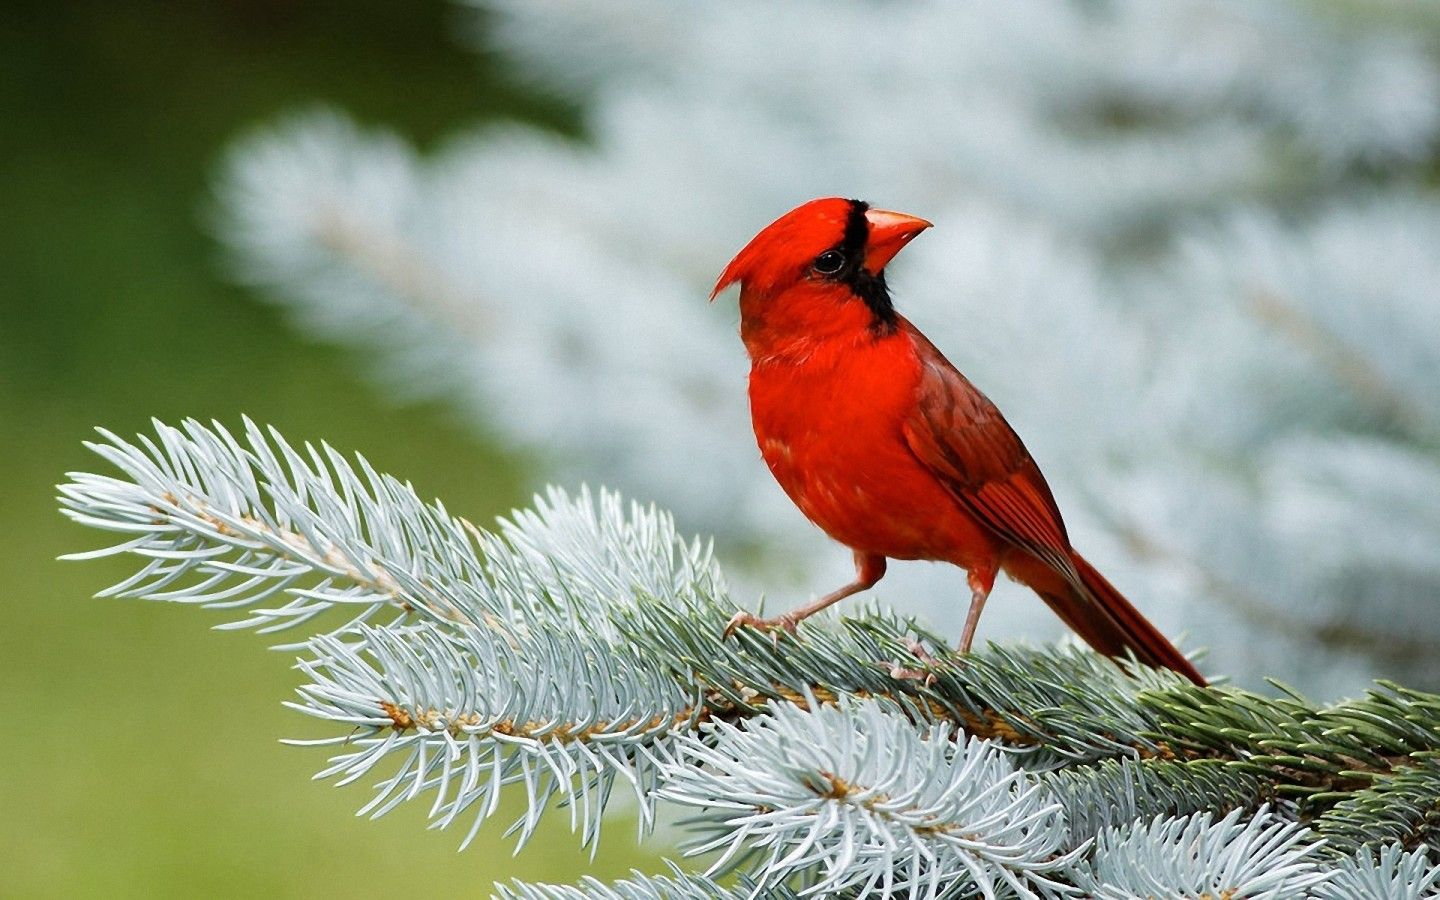 Image Detail For Red Cardinal Free Desktop Wallpapers Download Cardinal Birds Beautiful Bird Wallpaper Beautiful Birds